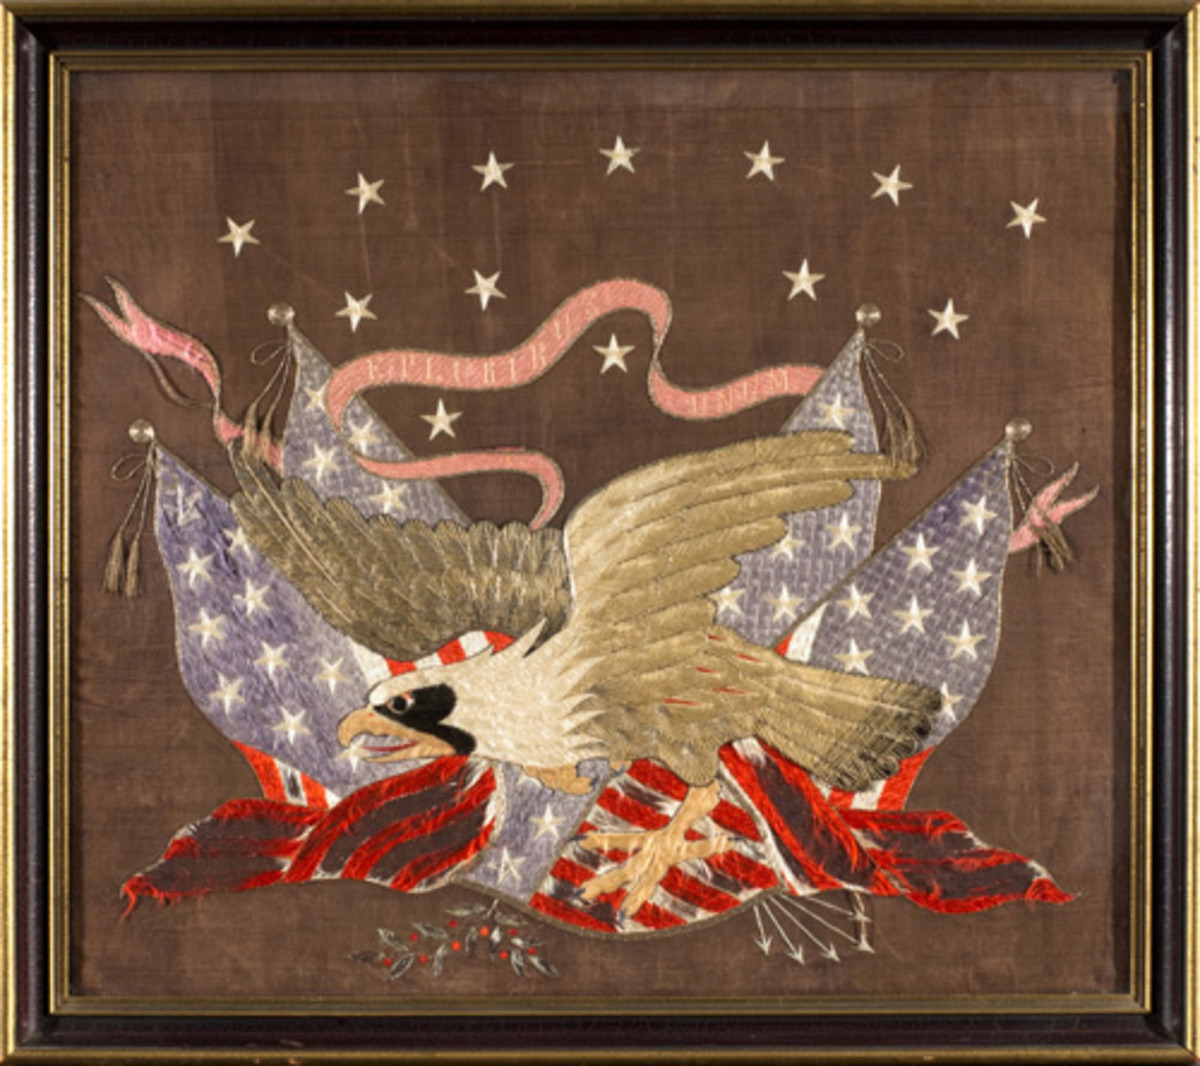 decorative embroidered eagle and four flags with stars